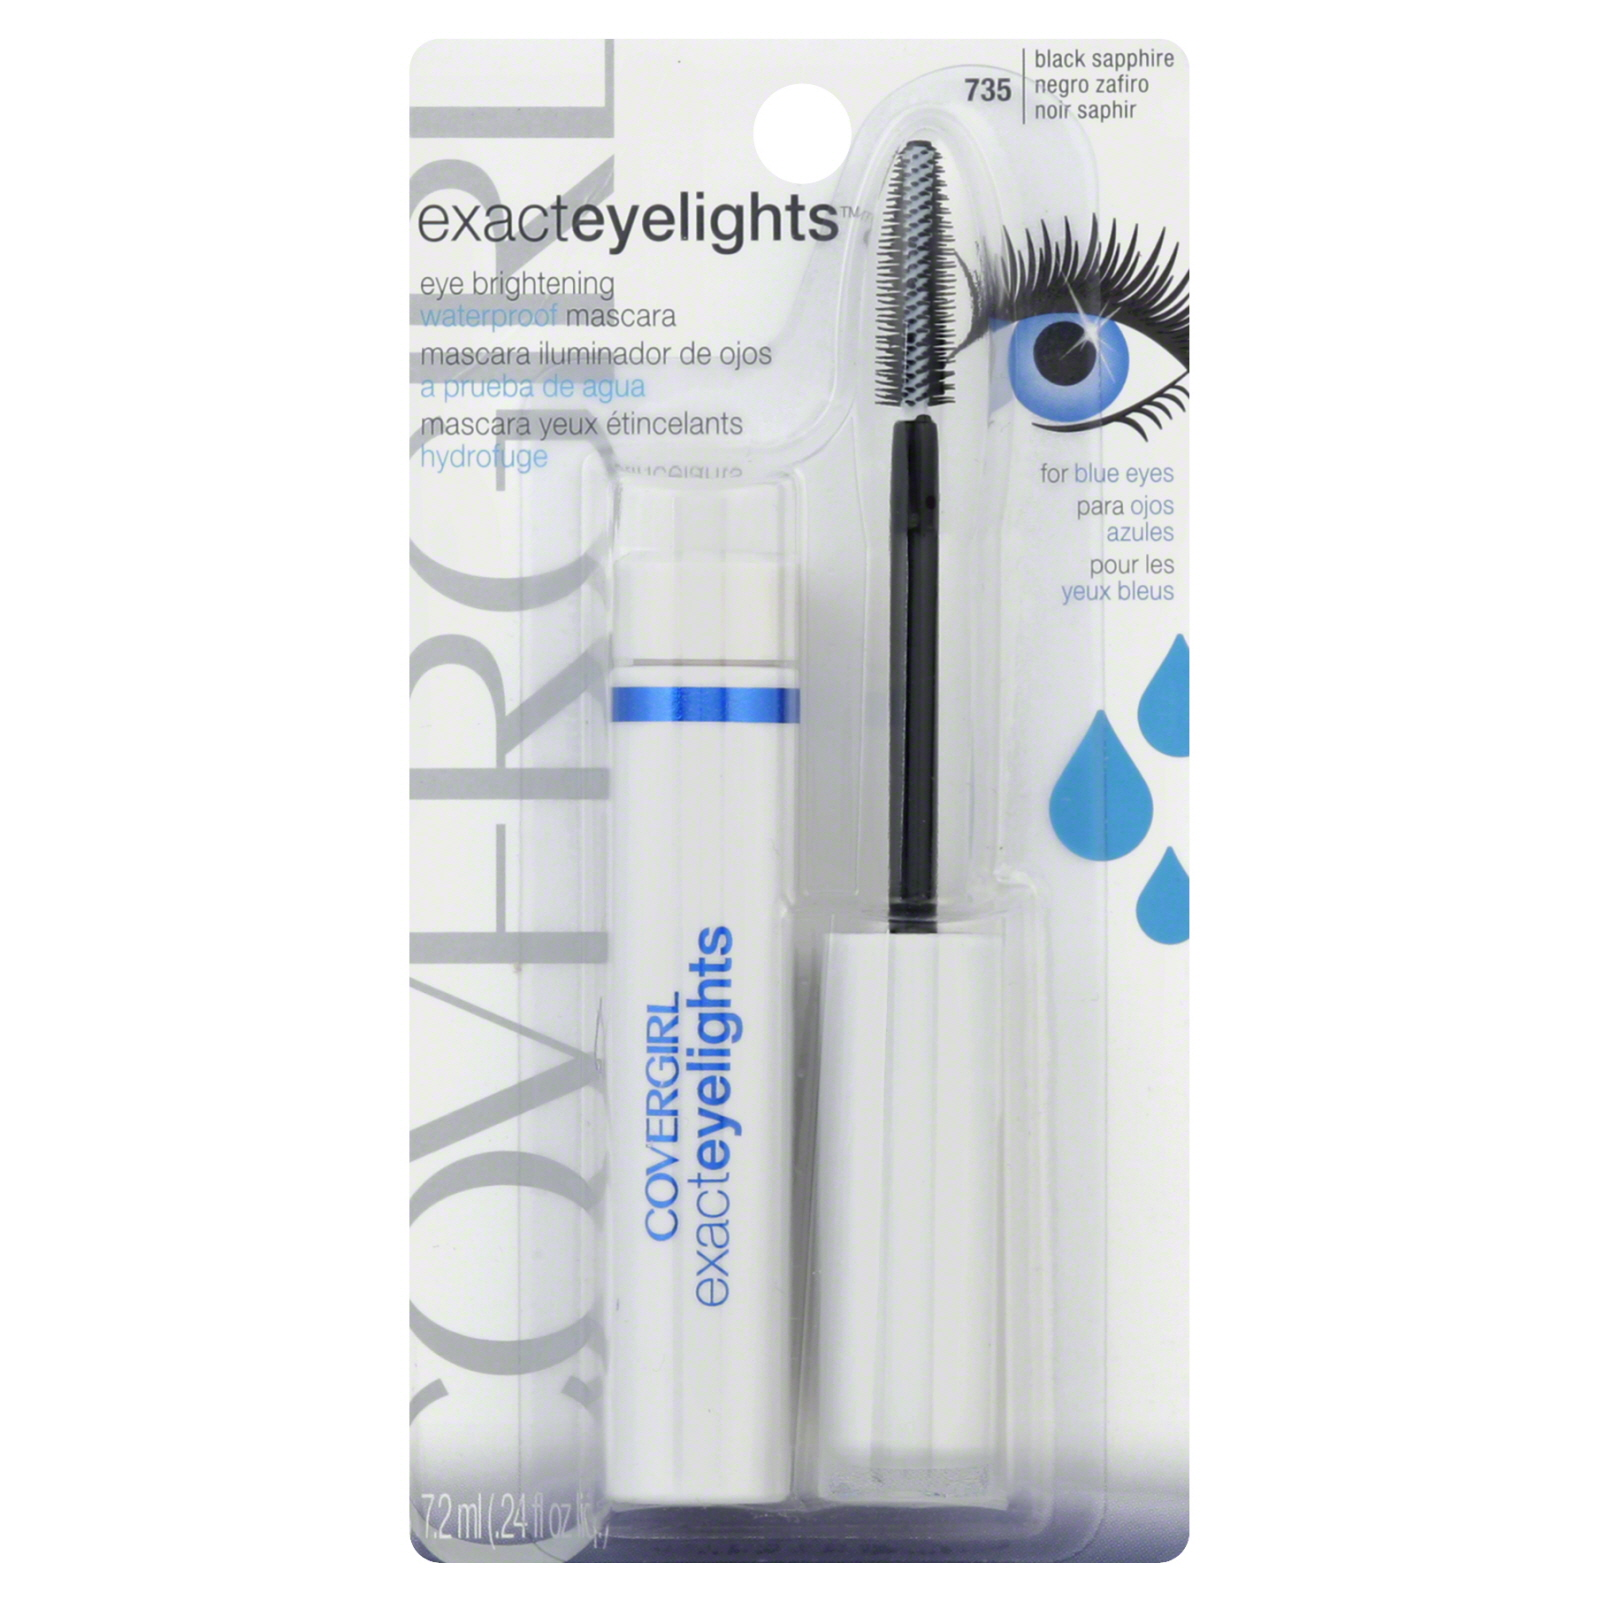 Exact Eyelights Mascara, Waterproof, Eye